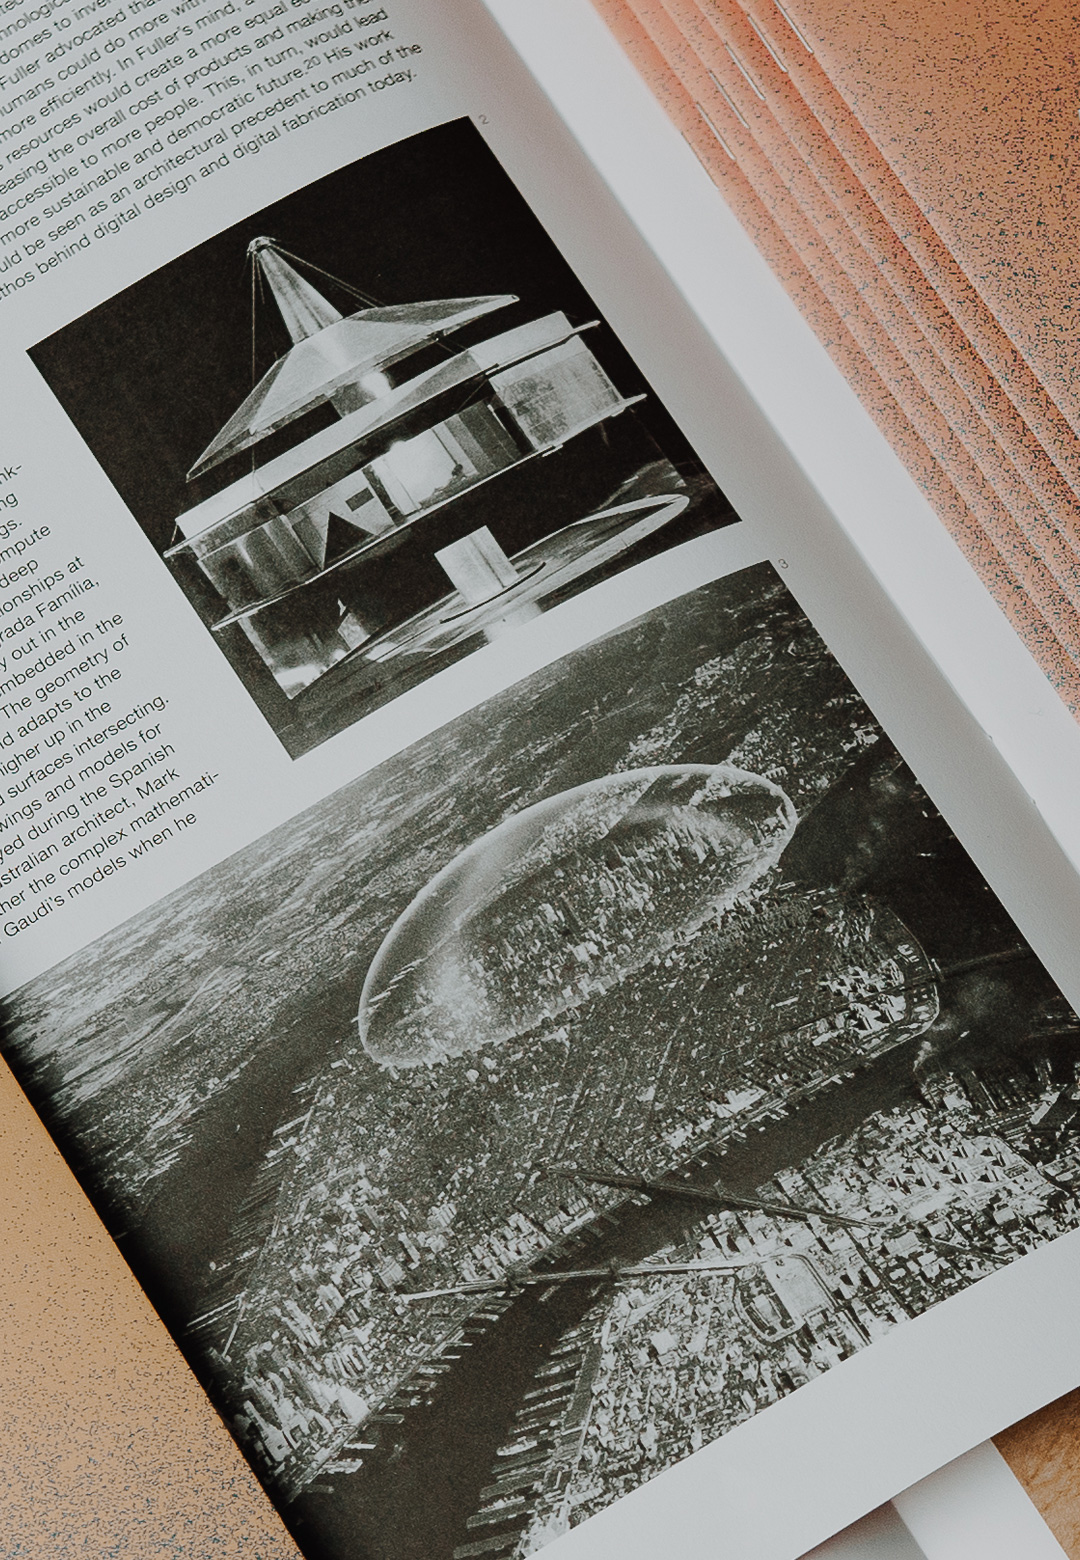 Inside the pages of 'The Digital in Architecture' report authored by Mollie Claypool | The Digital in Architecture | SPACE10 | STIRworld